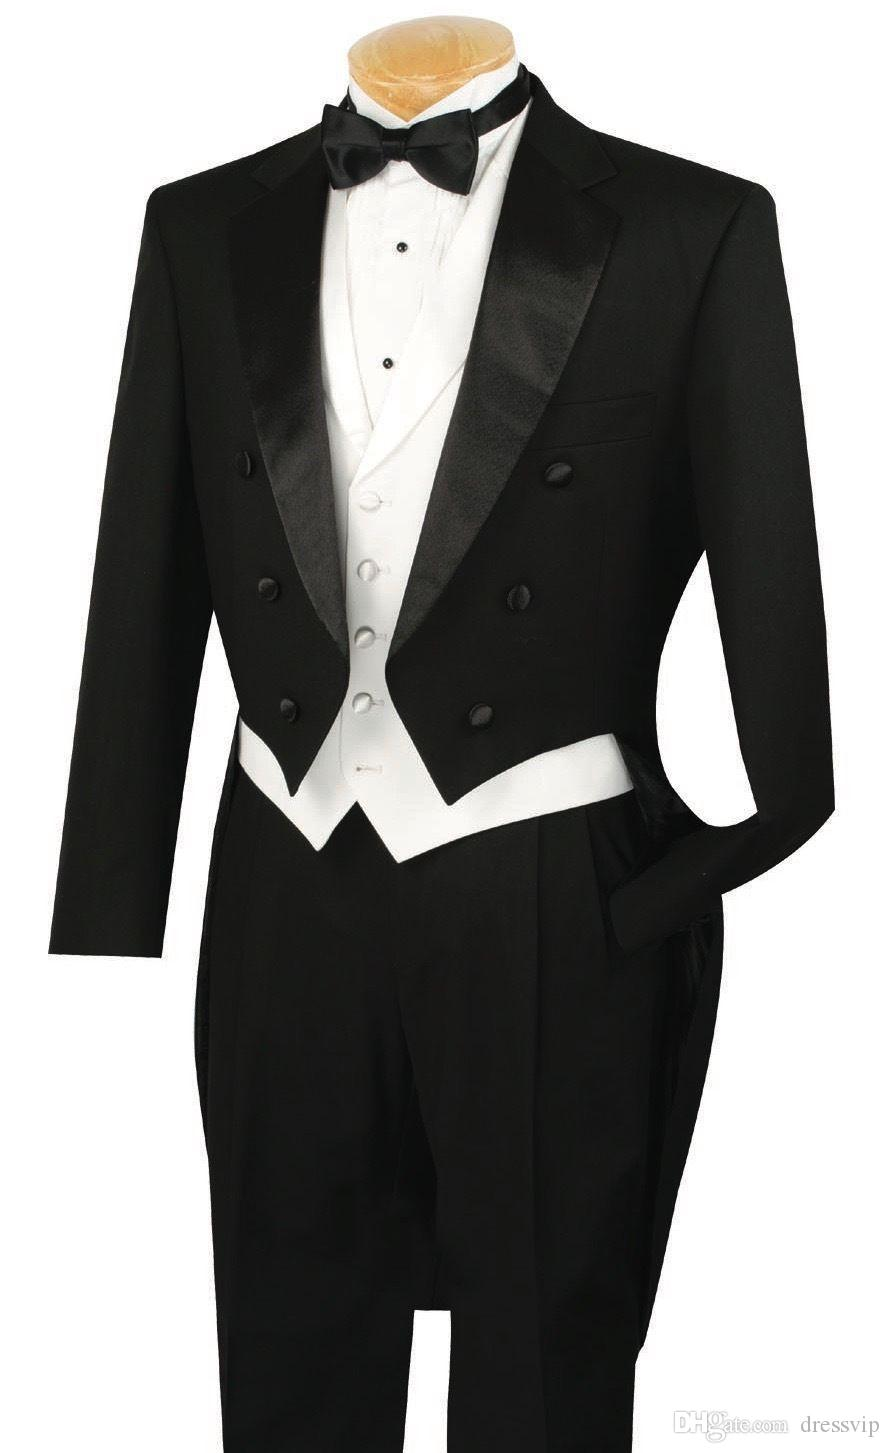 Fit Slim 3Pcs Black Lapel Groom Mens Suits With Tail Coat Formal Party Custom Made Top Quality Wedding Tuxedos